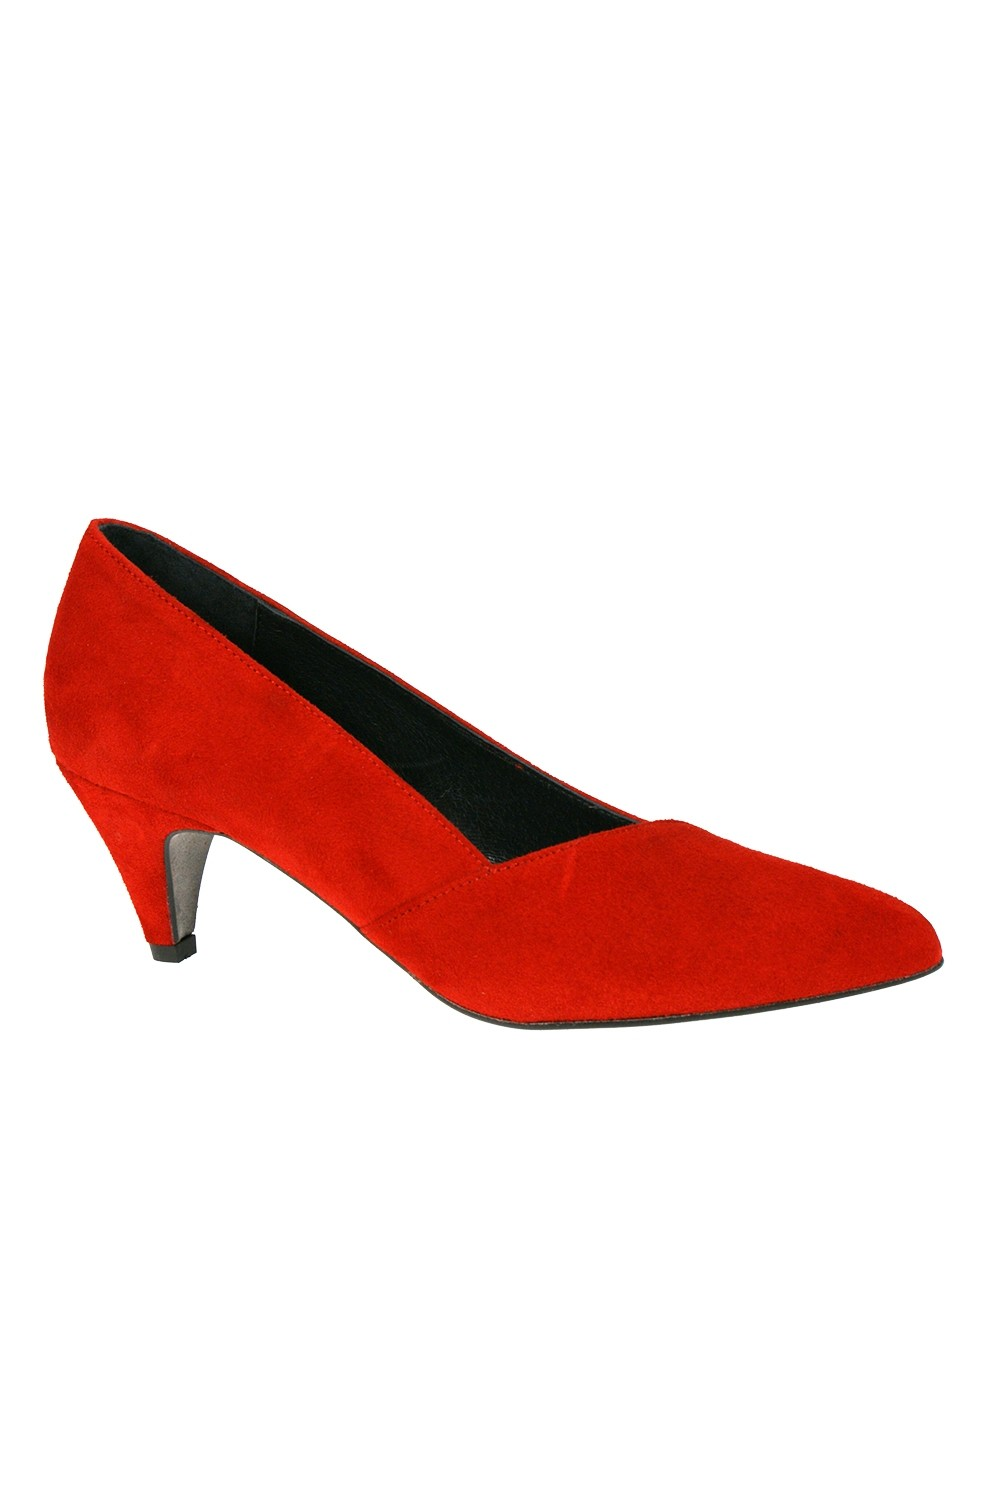 Mentor W7774 Red suede